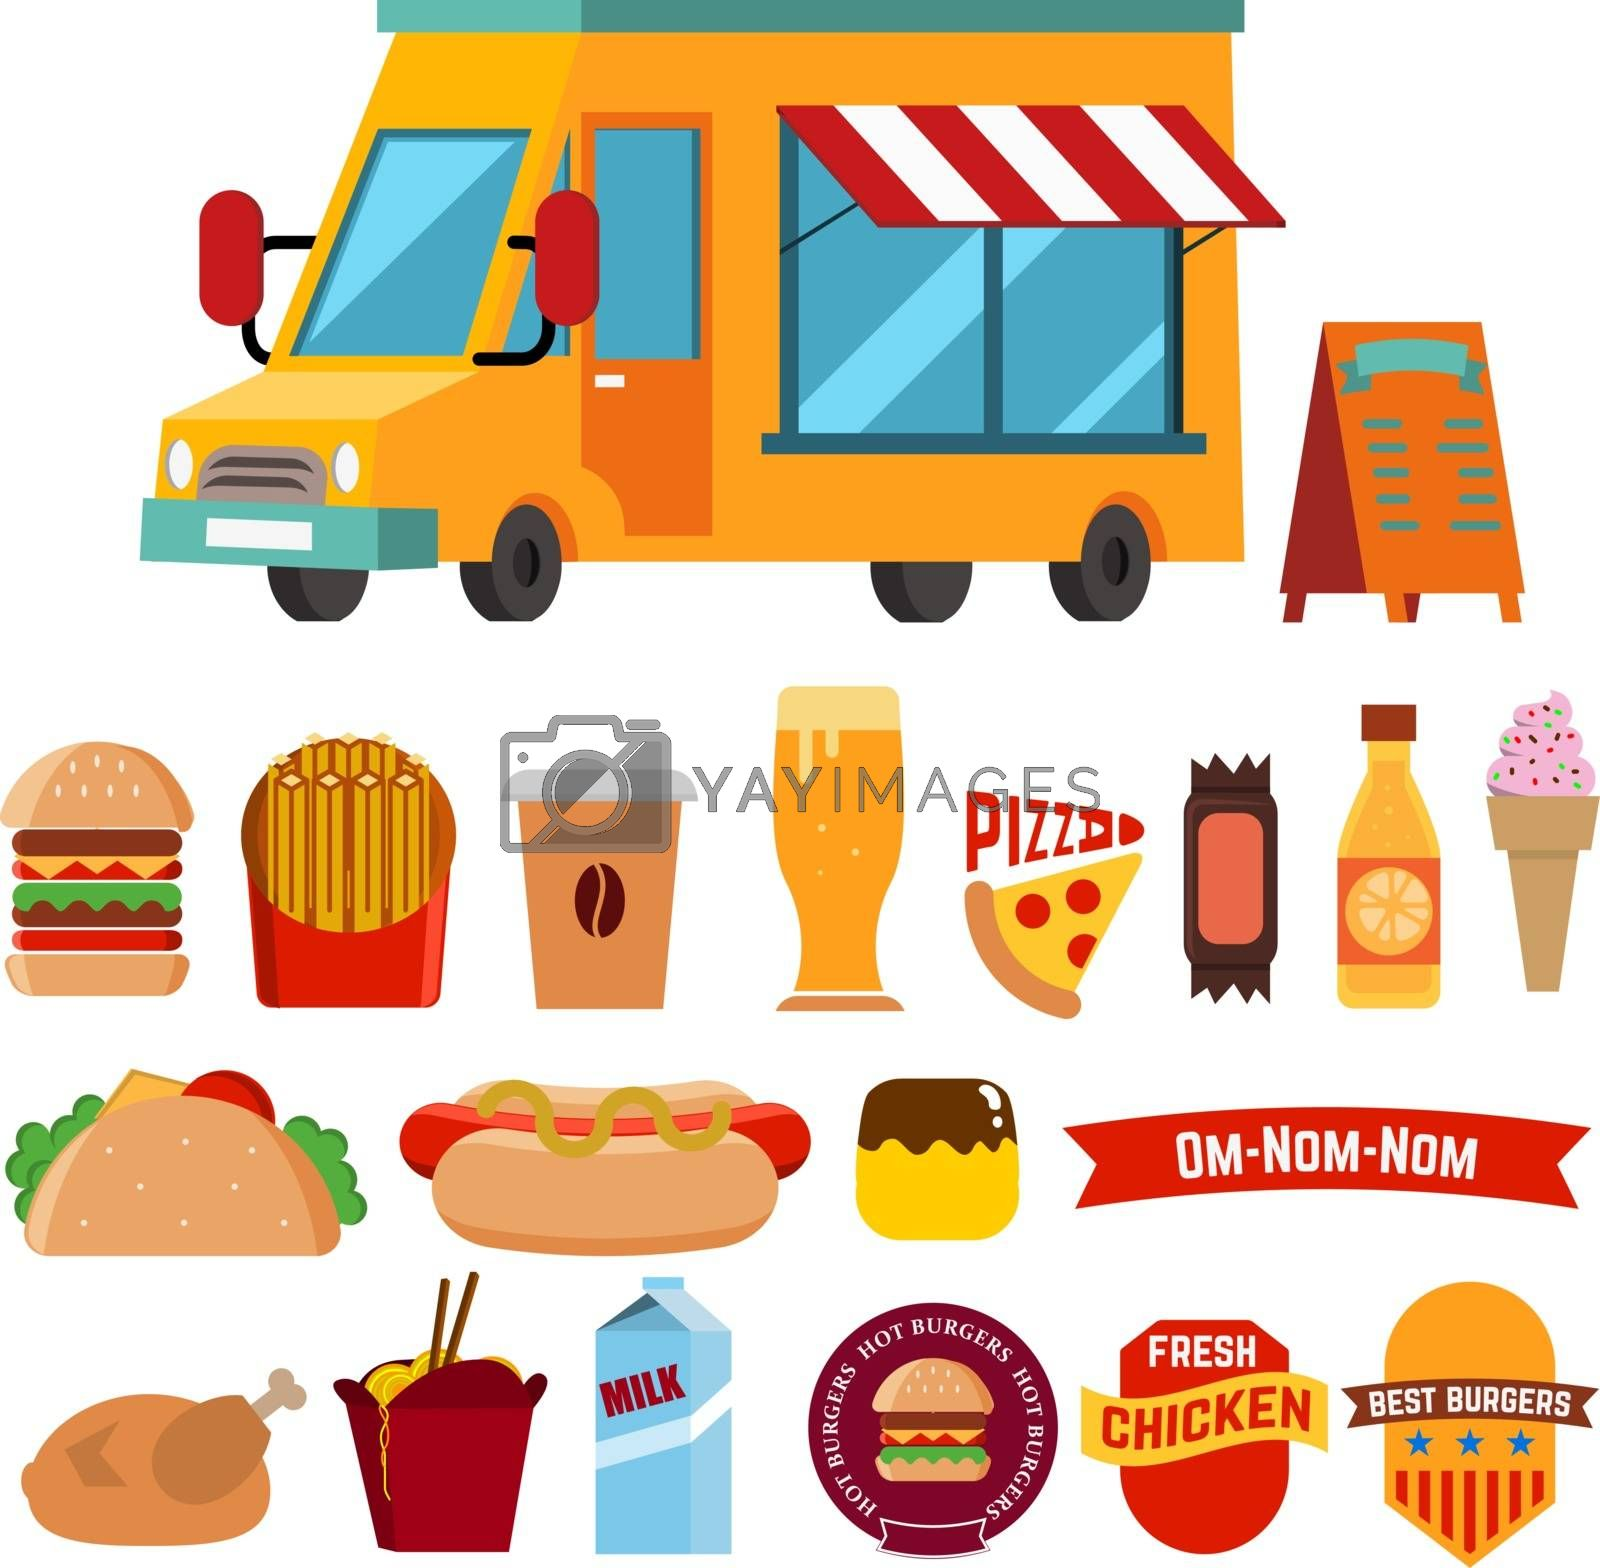 Flat design style modern vector illustration icons set of wagon full of tasty summer food, meals, drinks and fruits. Isolated on white background